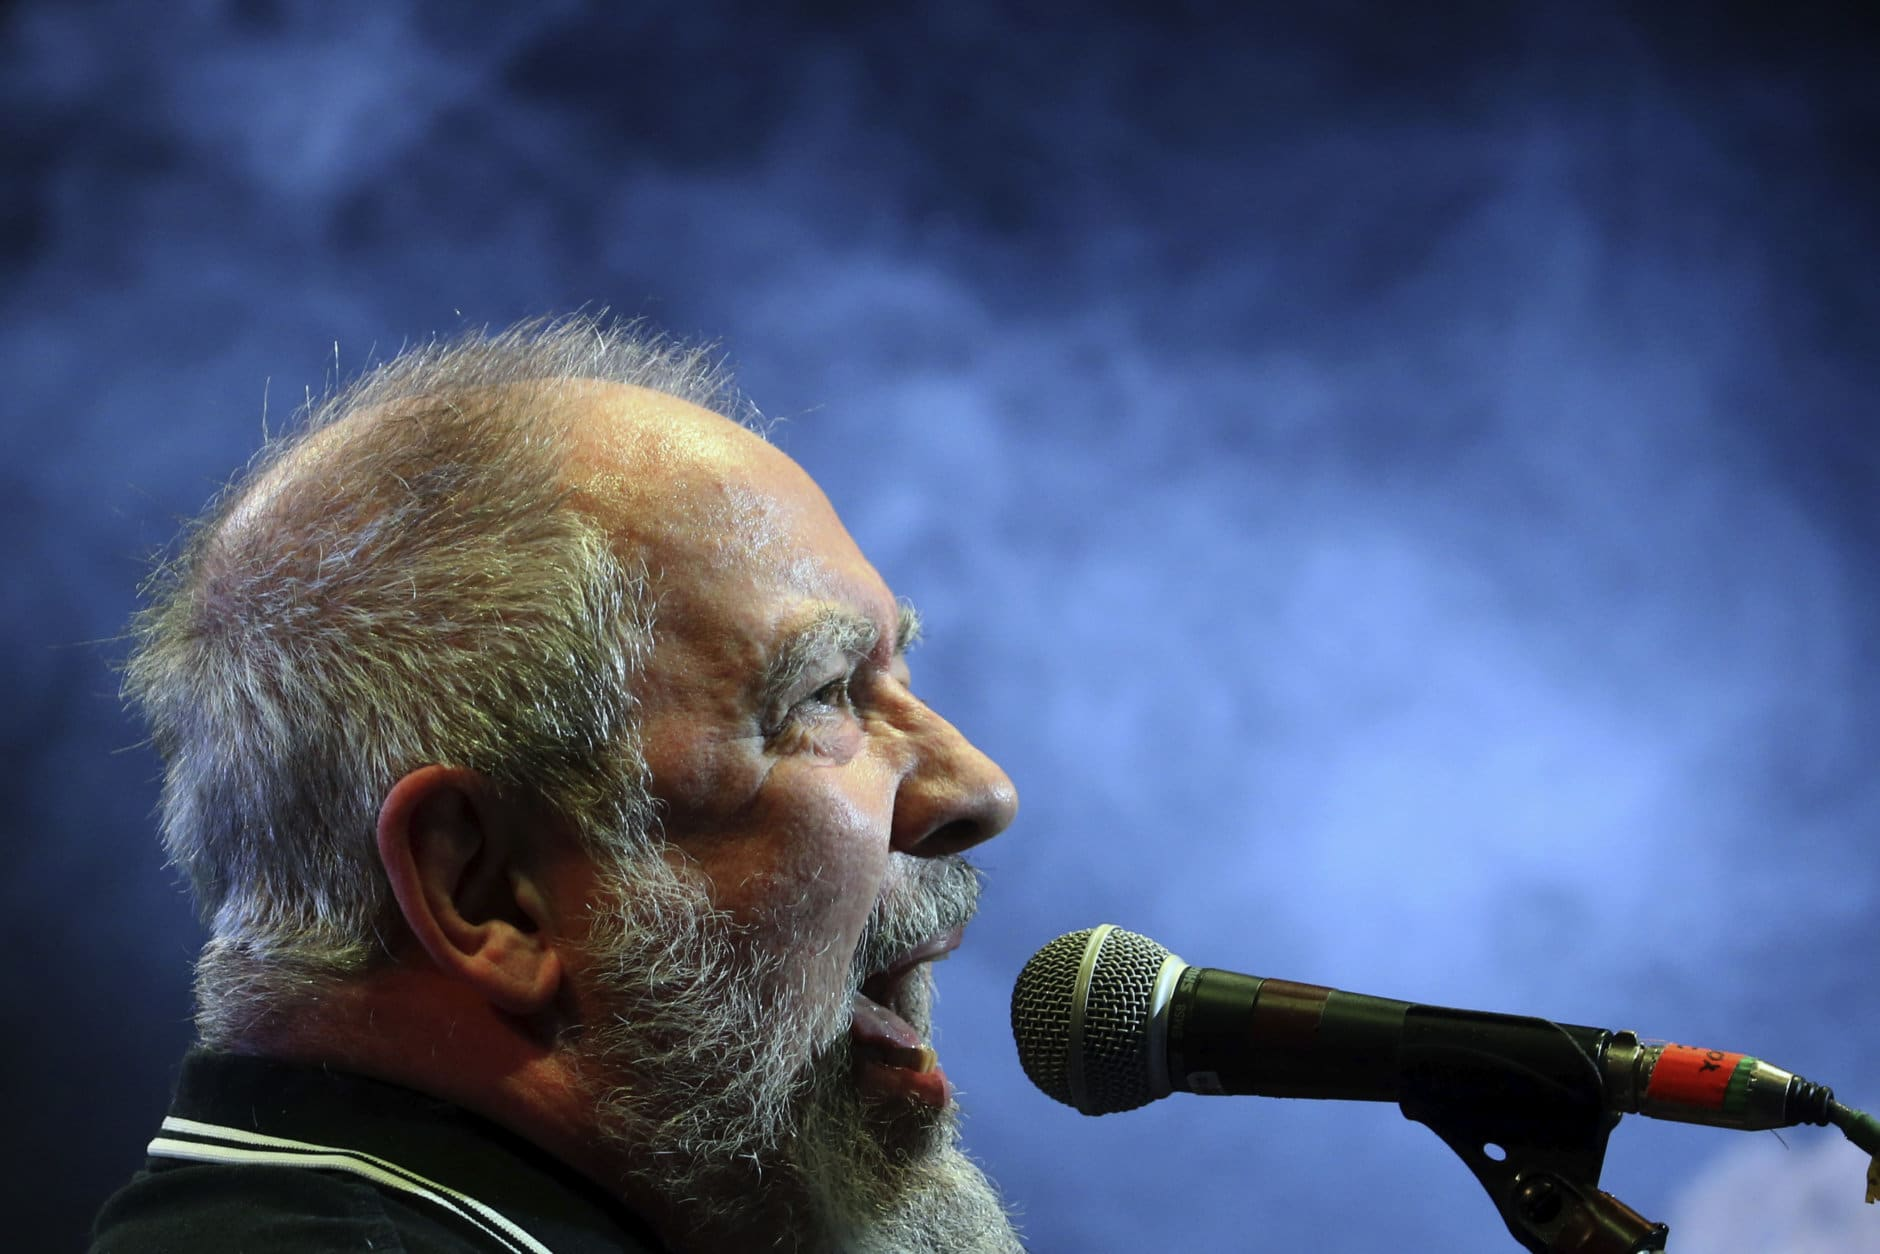 Frontman Pete Shelley of the British punk band Buzzcocks, performs at Plaza Condesa in the 6th edition of the Marvin Festival, in Mexico City, Saturday, May 19, 2018. Shelley died Dec. 6, 2018, at age 63. (AP Photo/Marco Ugarte)